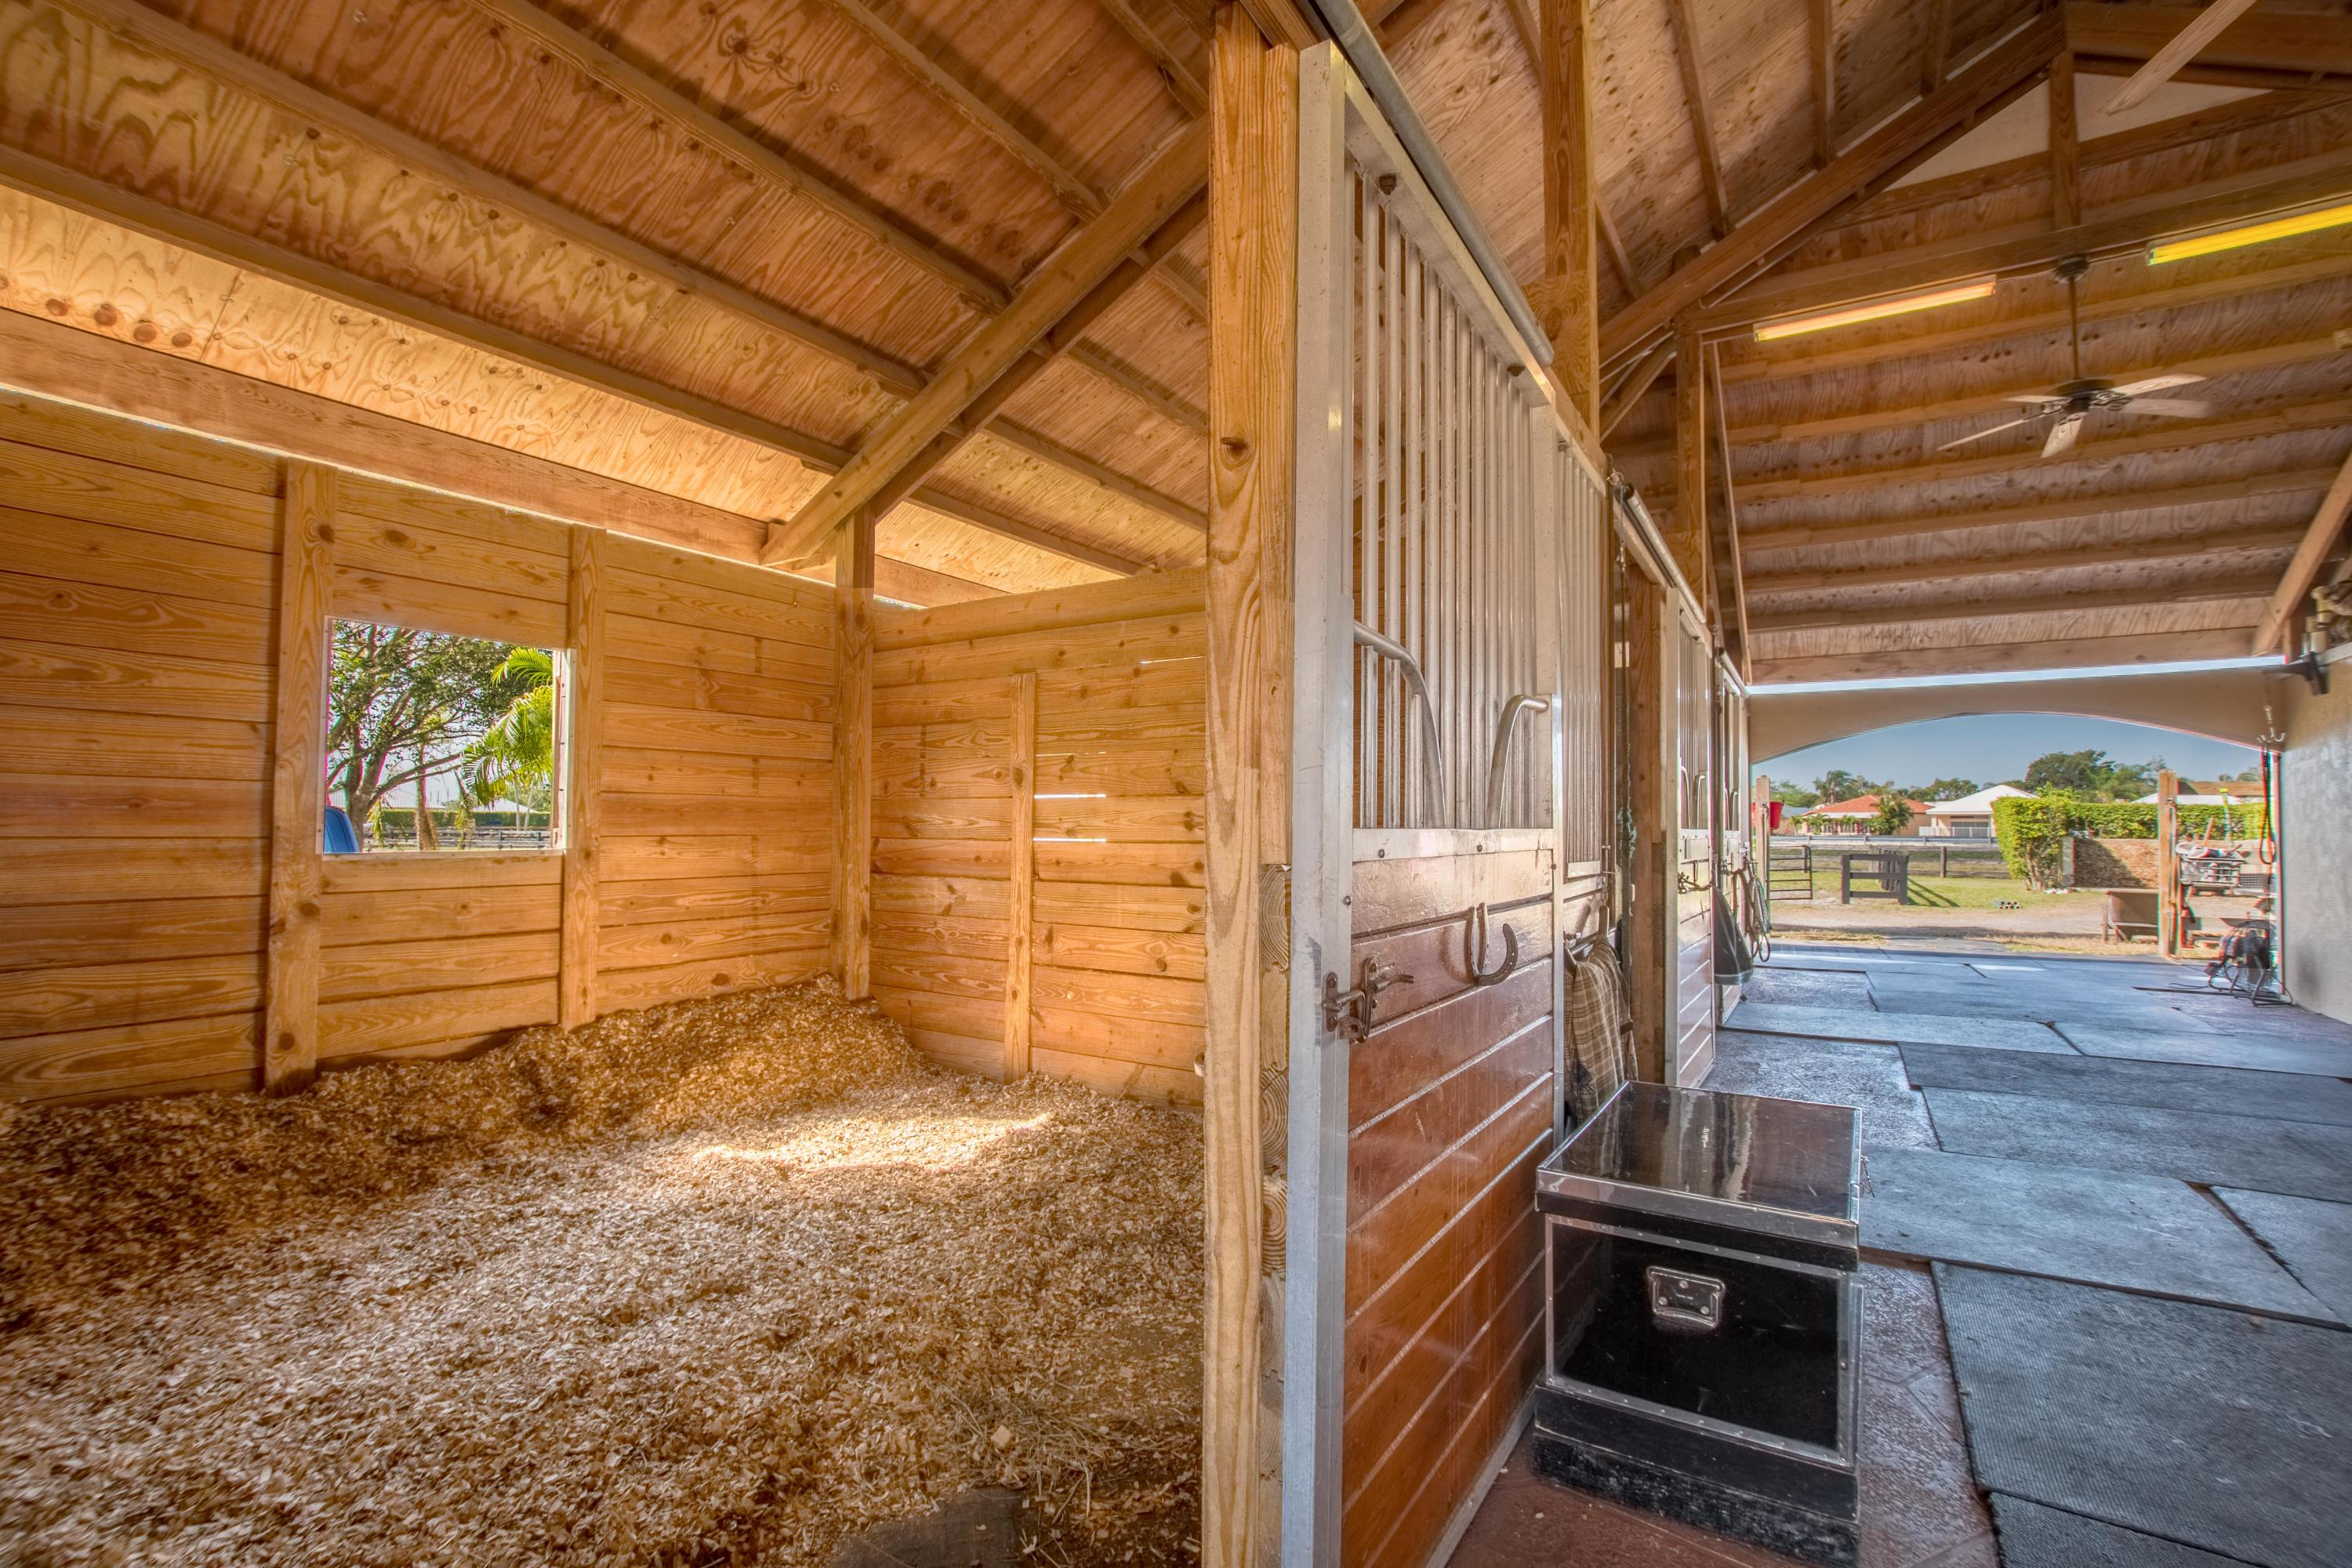 SADDLE TRAIL HOMES FOR SALE